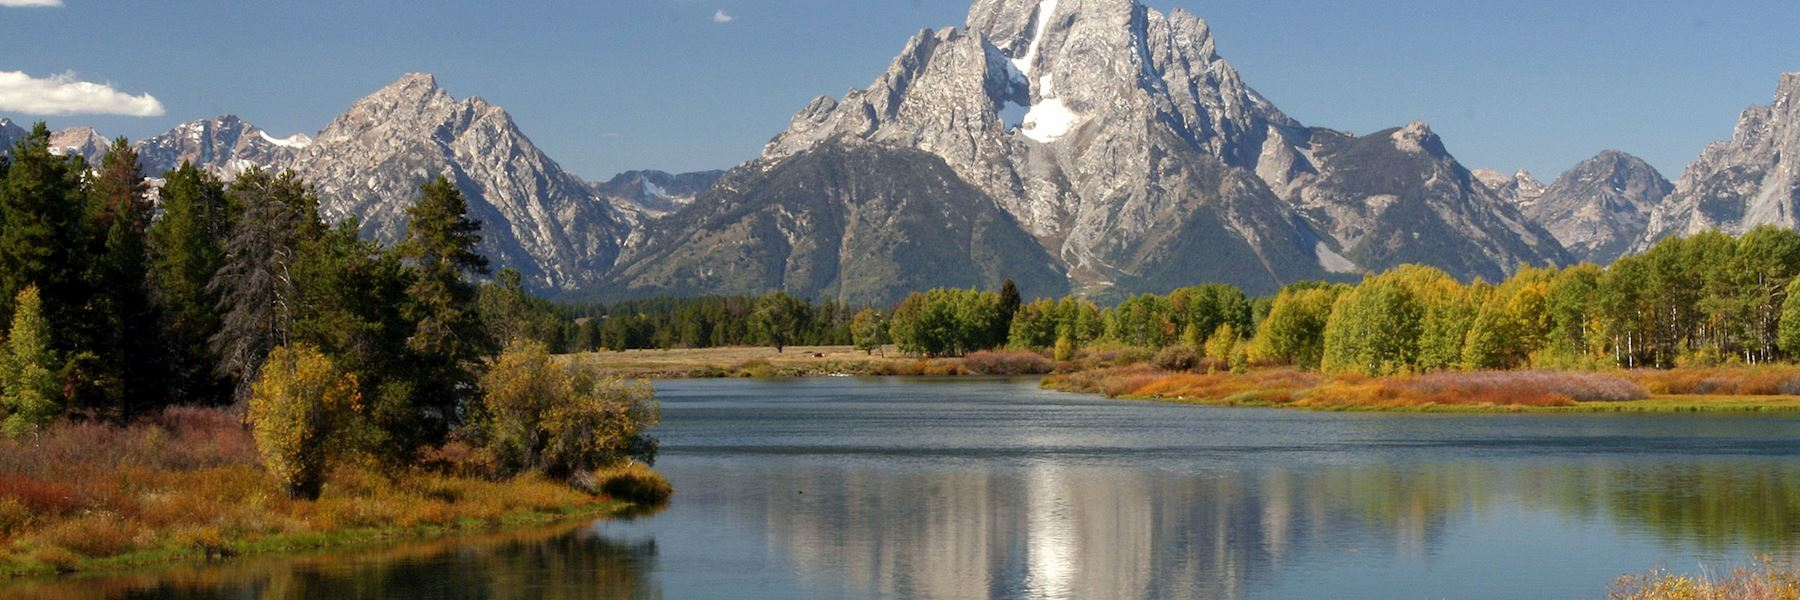 Visit Jackson - Grand Teton National Park, USA